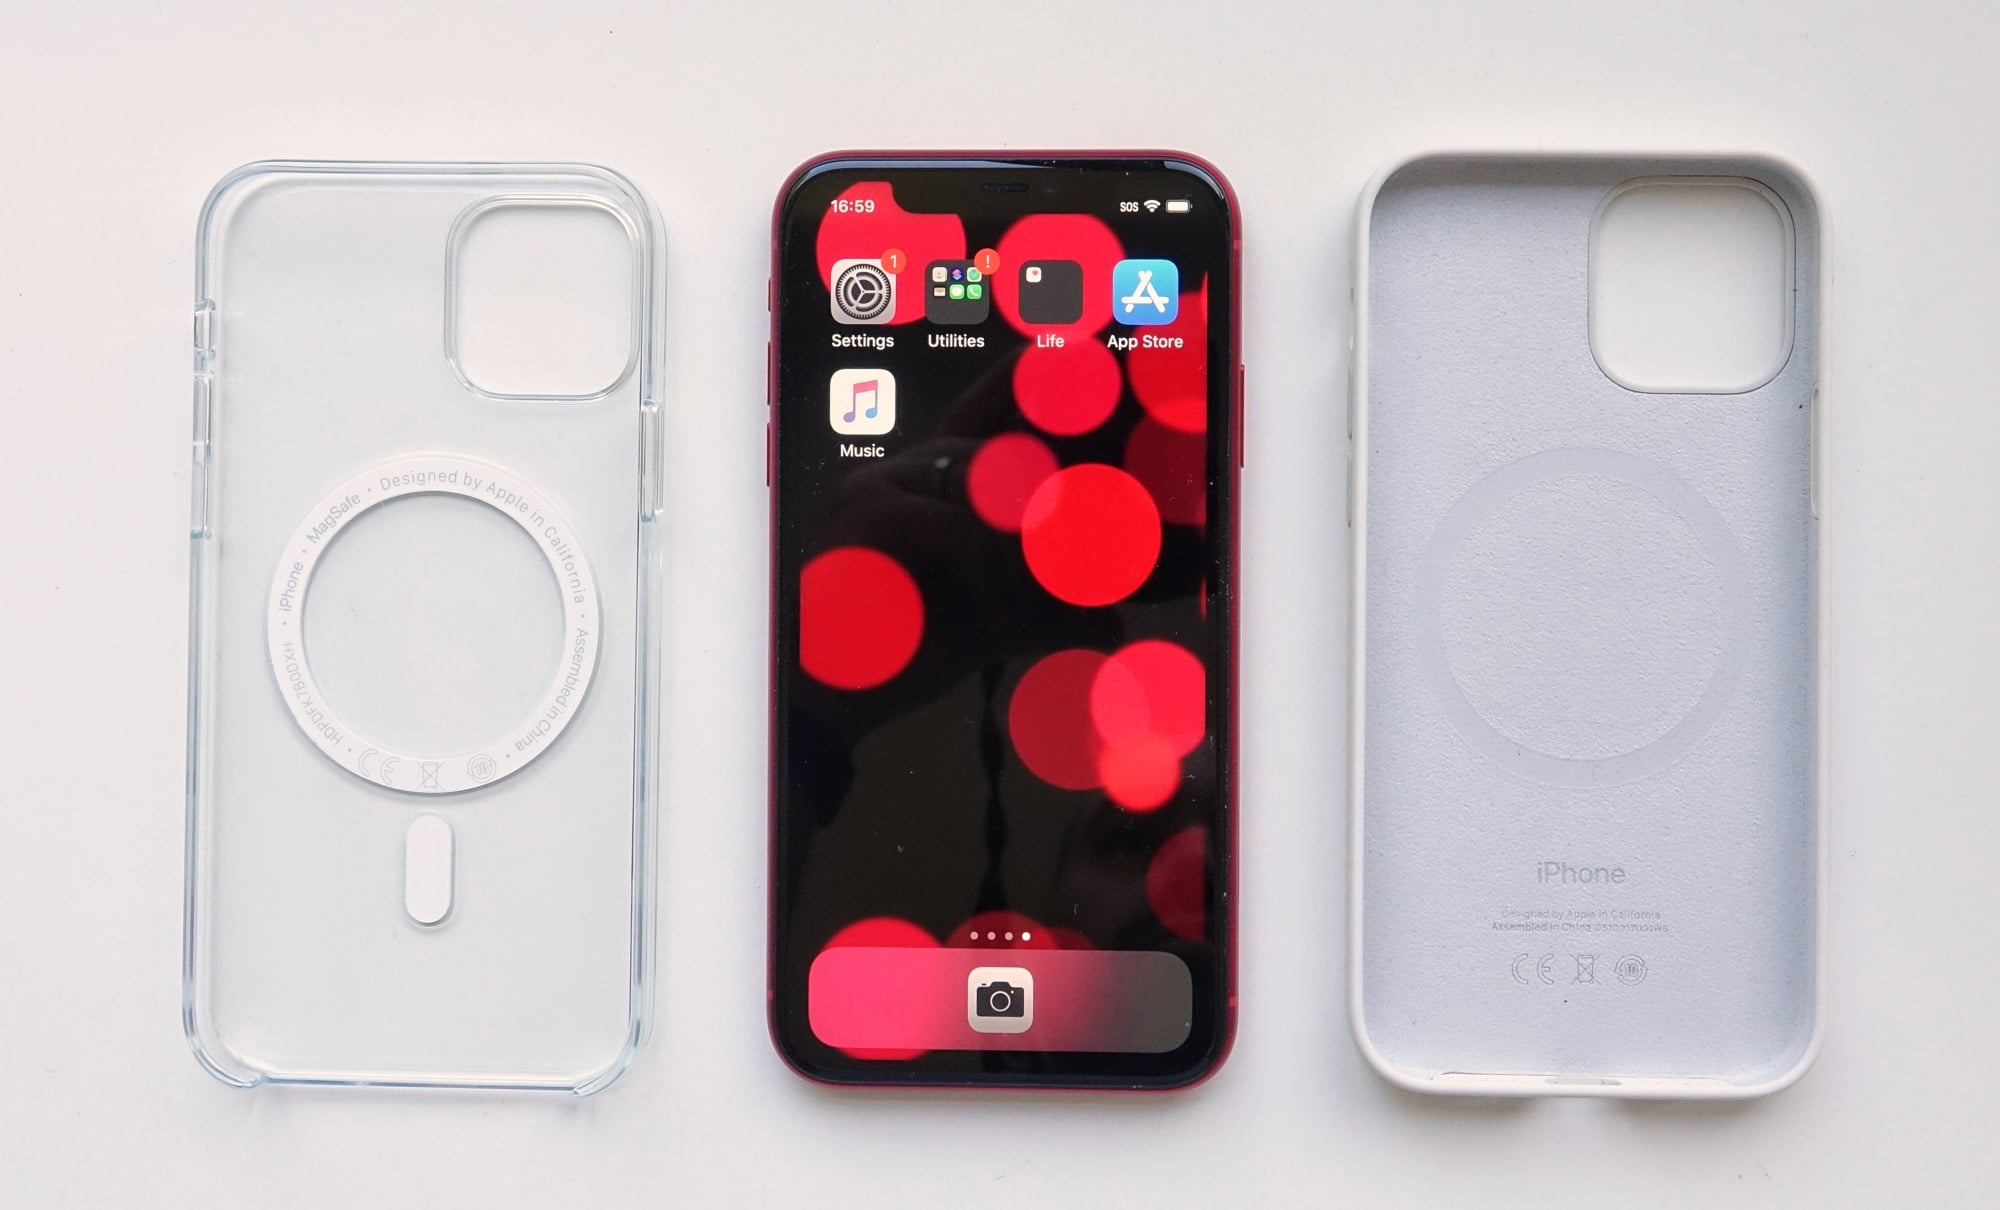 An iPhone 11 next to iPhone 12 cases.